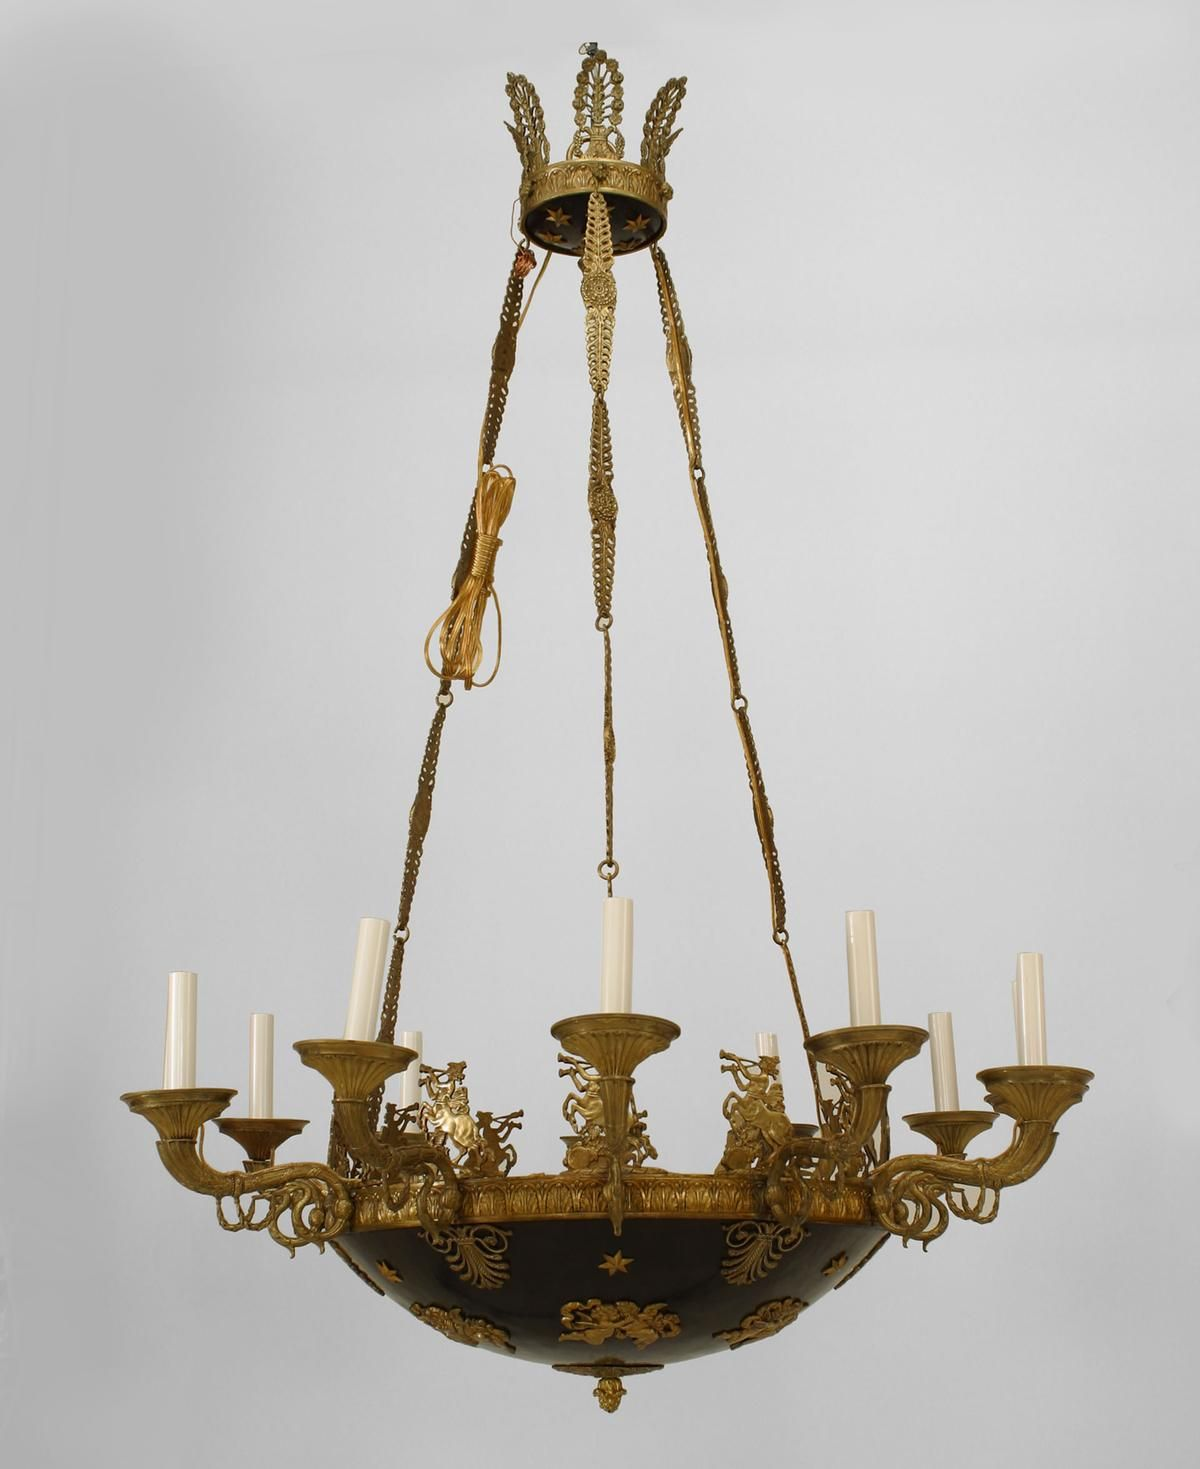 French Empire lighting chandelier gilt | French Empire ...